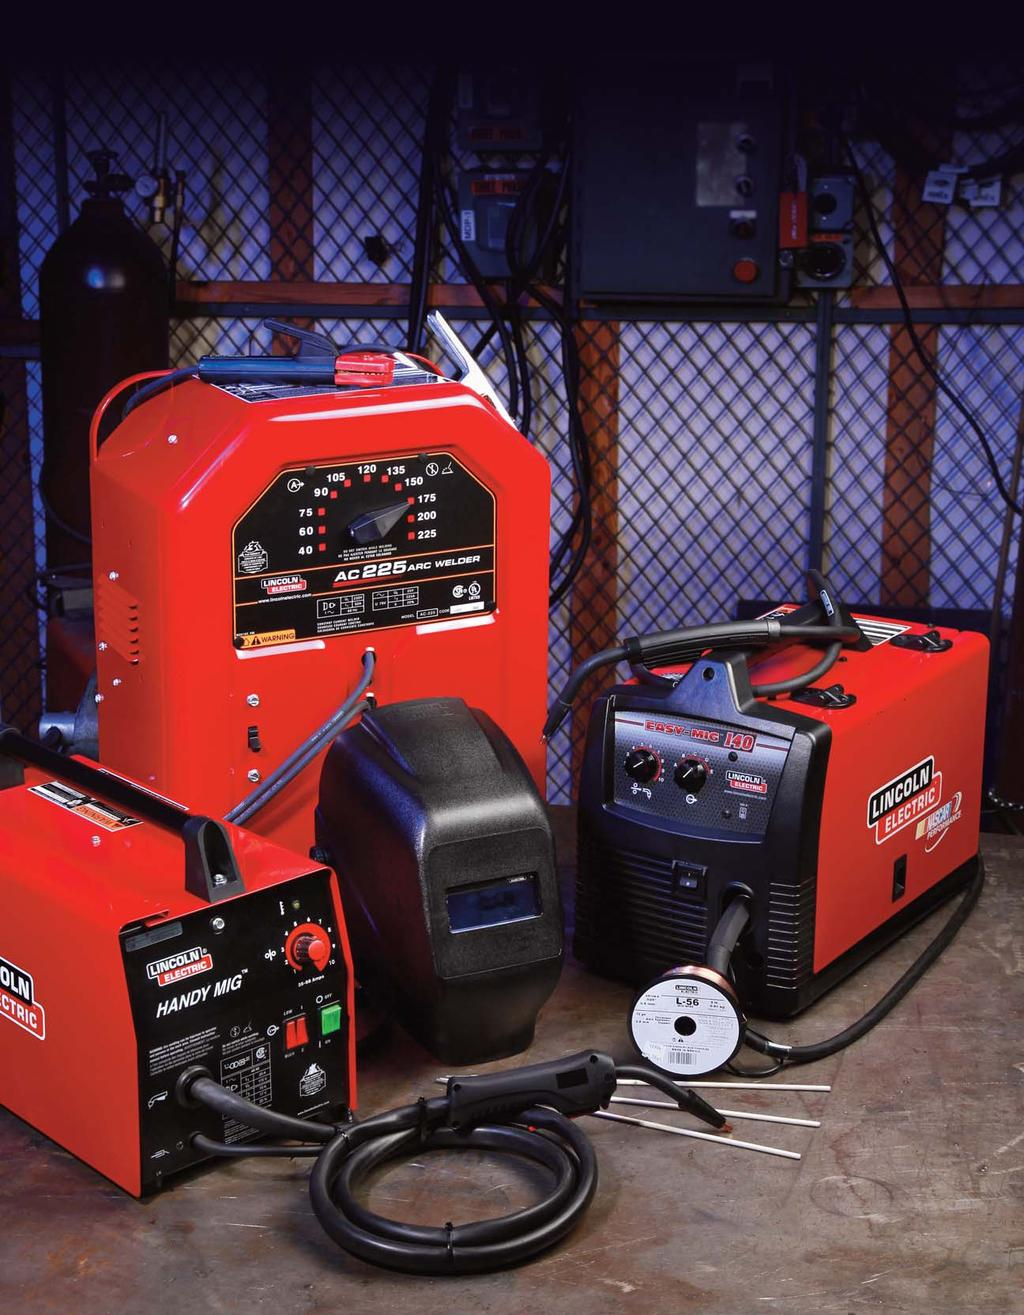 Lincoln Electric Retail Welding Products Stick Welders Wire Feed Welder